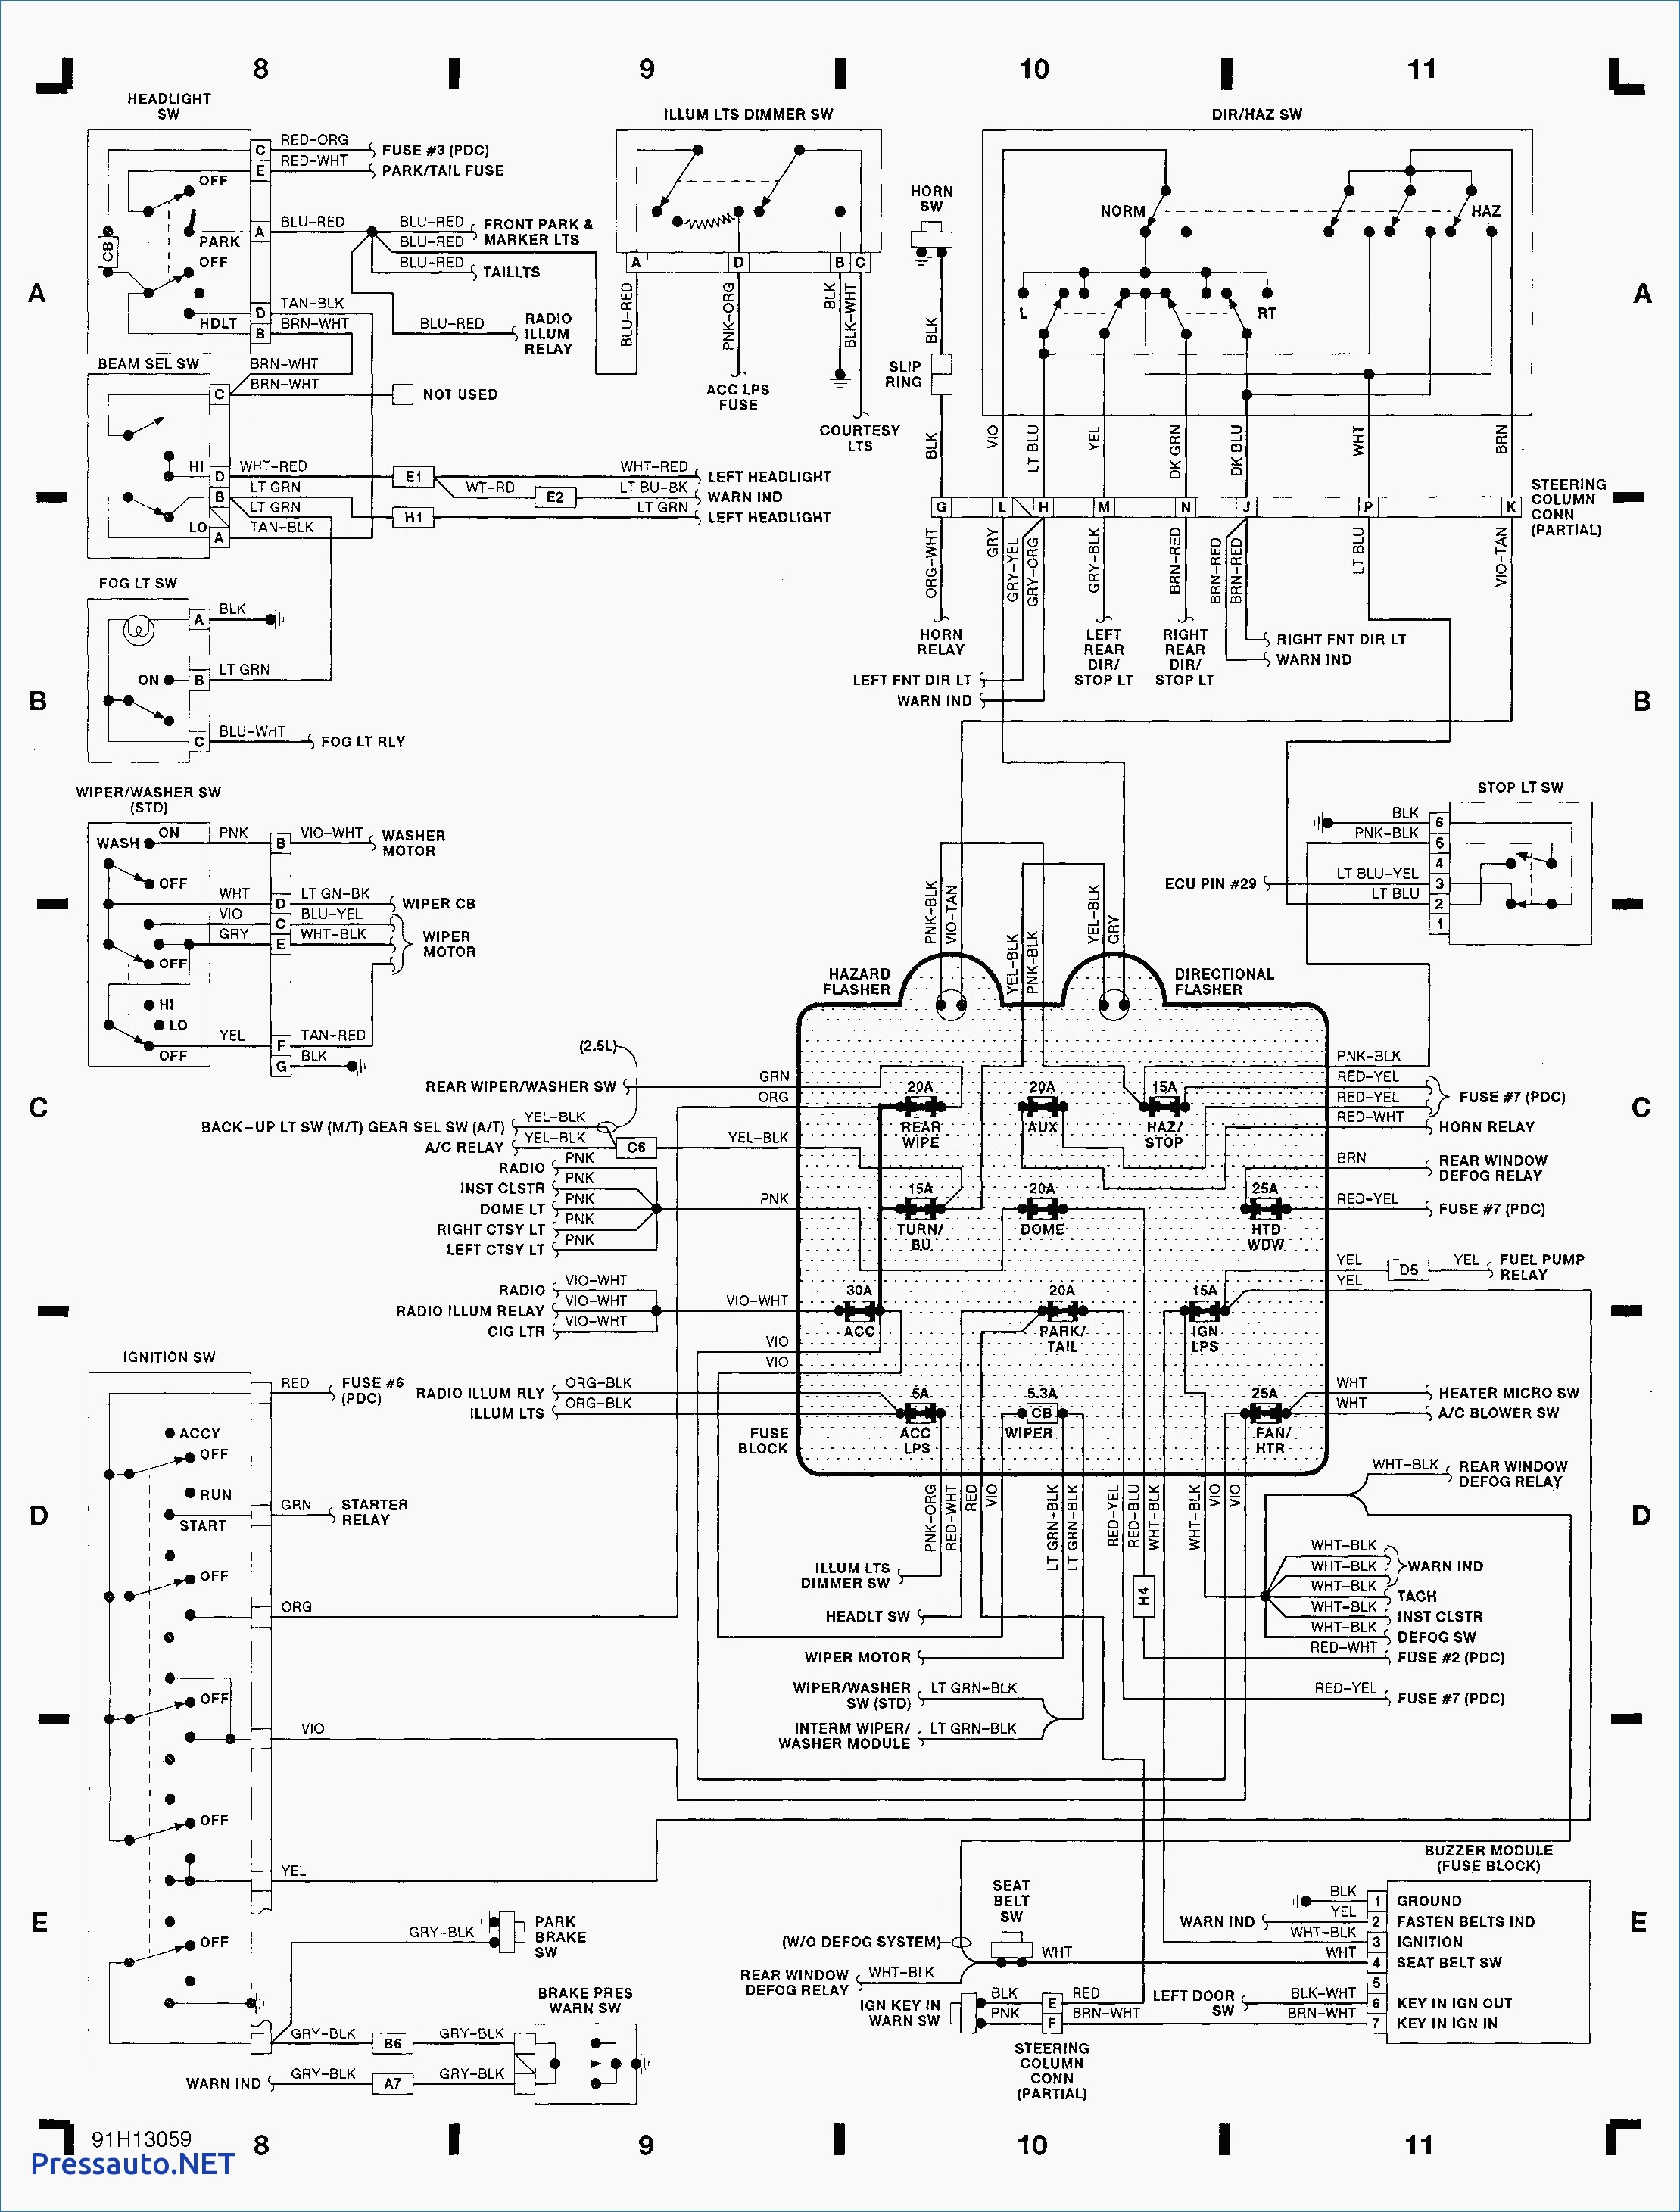 1993 Jeep Wrangler Distributor Wiring - 1997 Dodge Caravan Fuse Box Diagram  - 7ways.ke2x.jeanjaures37.frWiring Diagram